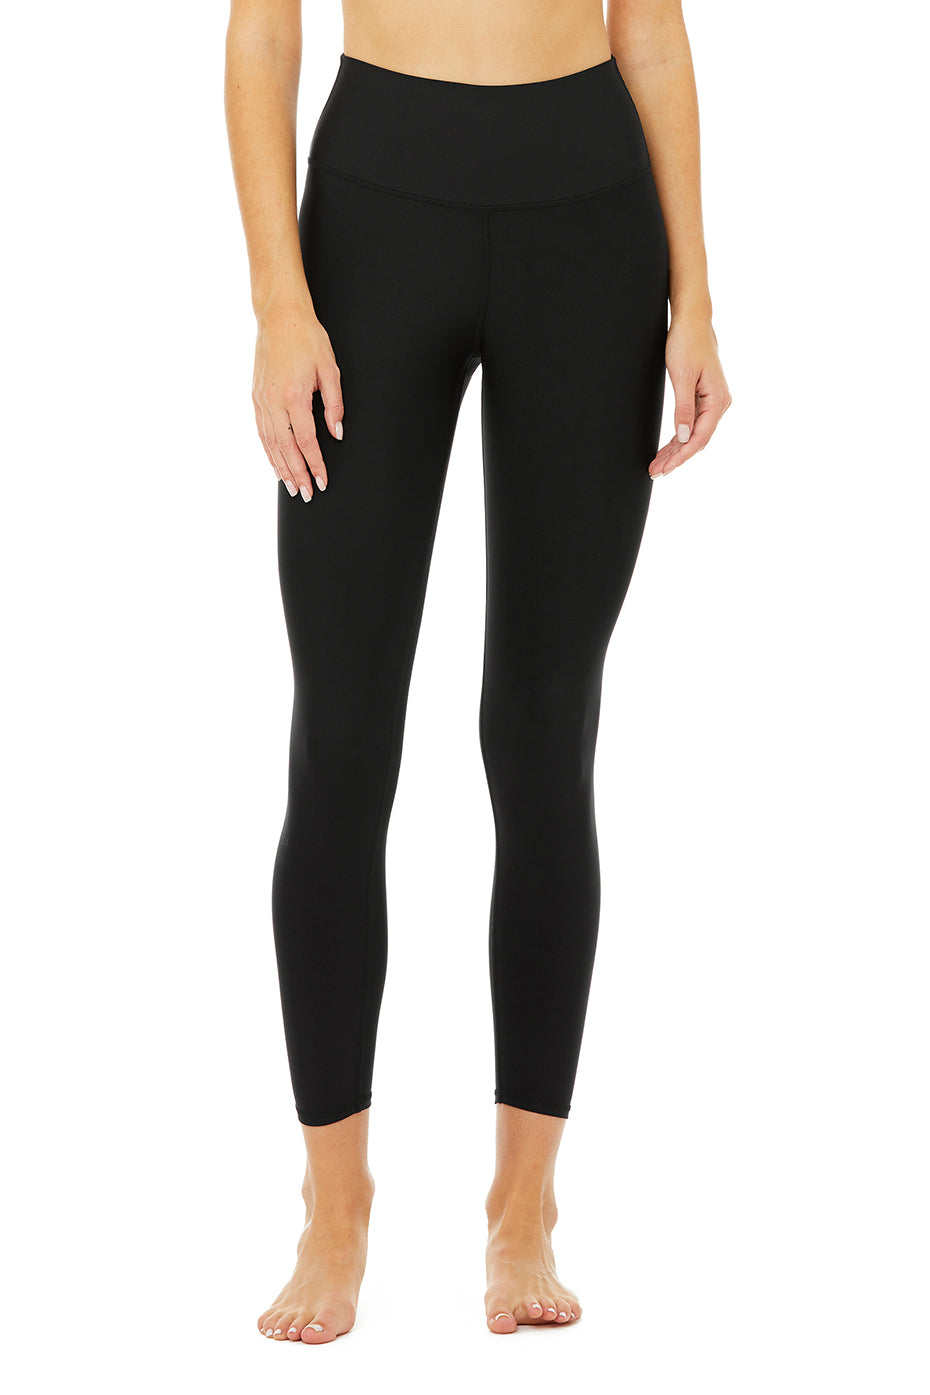 0b5ea1d8fbf3a5 Elevate Legging | Women's Yoga Bottoms